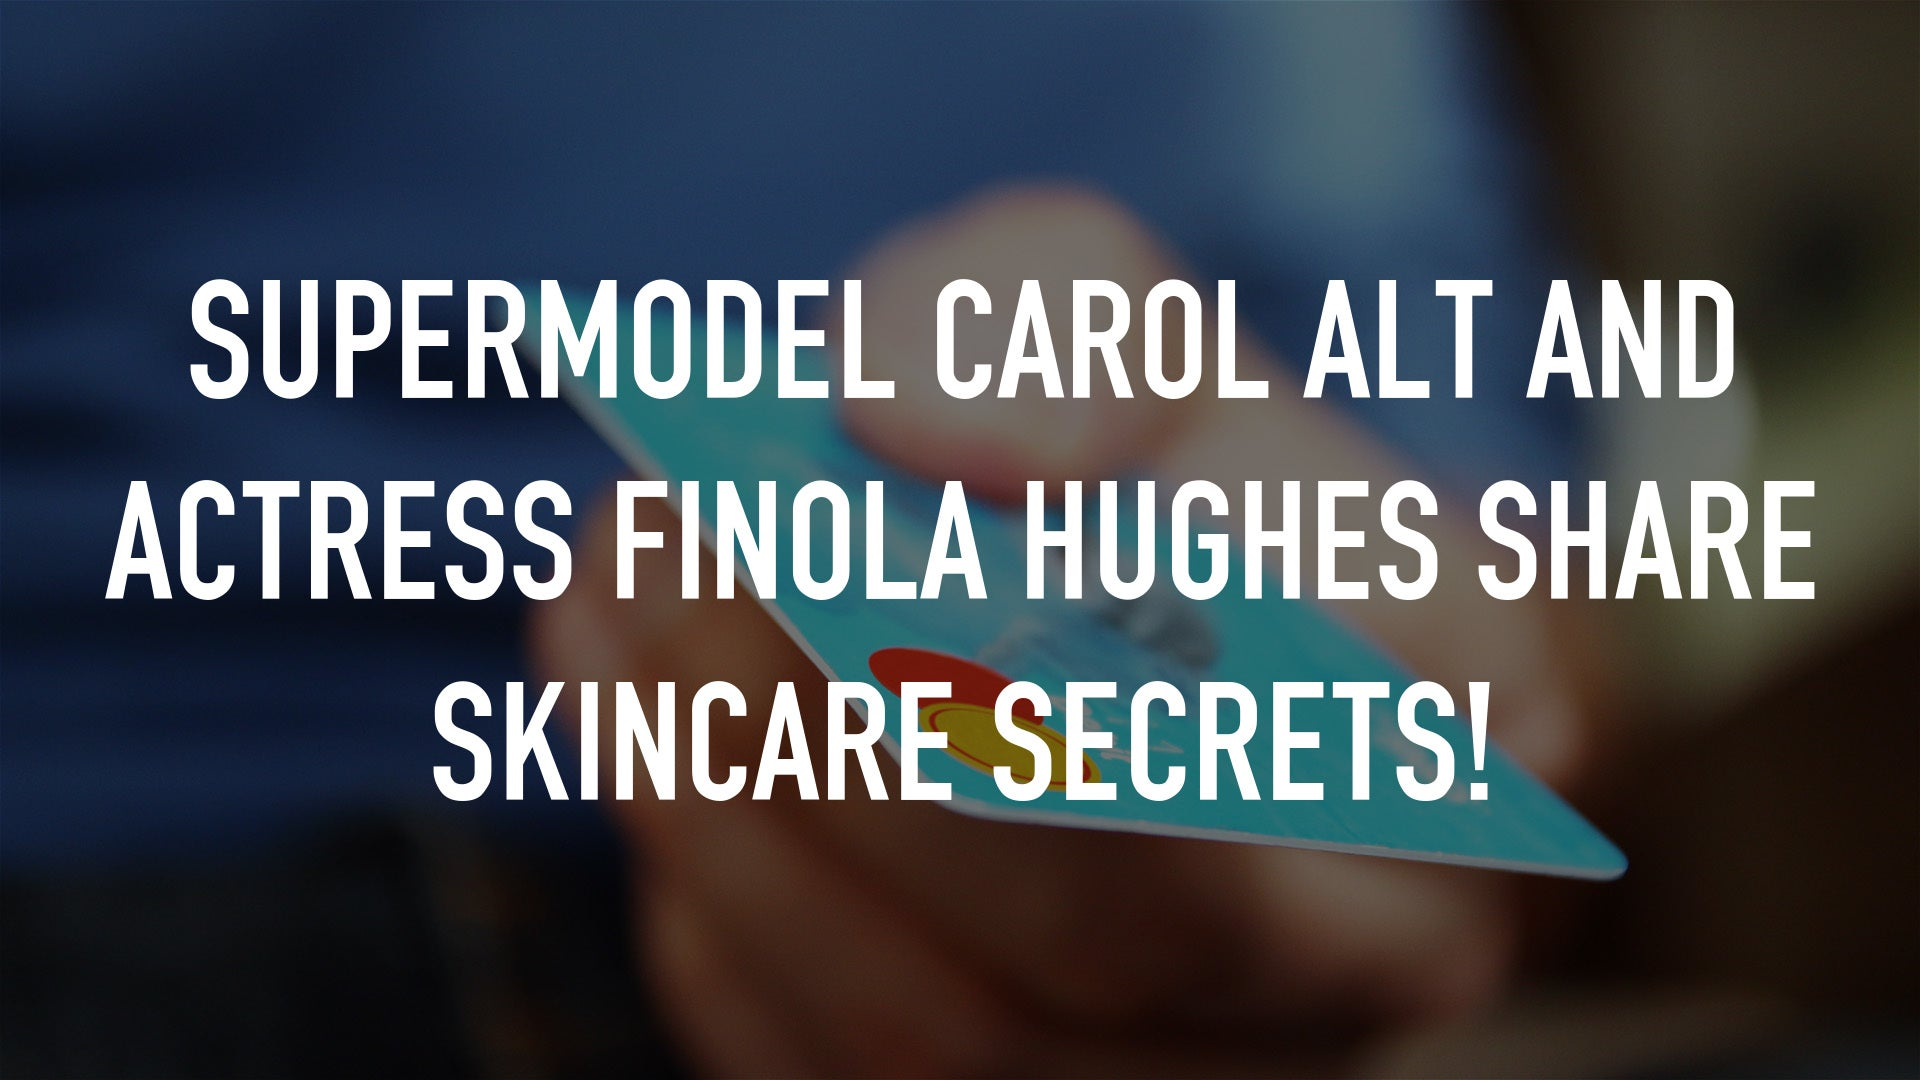 Supermodel Carol Alt and Actress Finola Hughes Share Skincare Secrets!